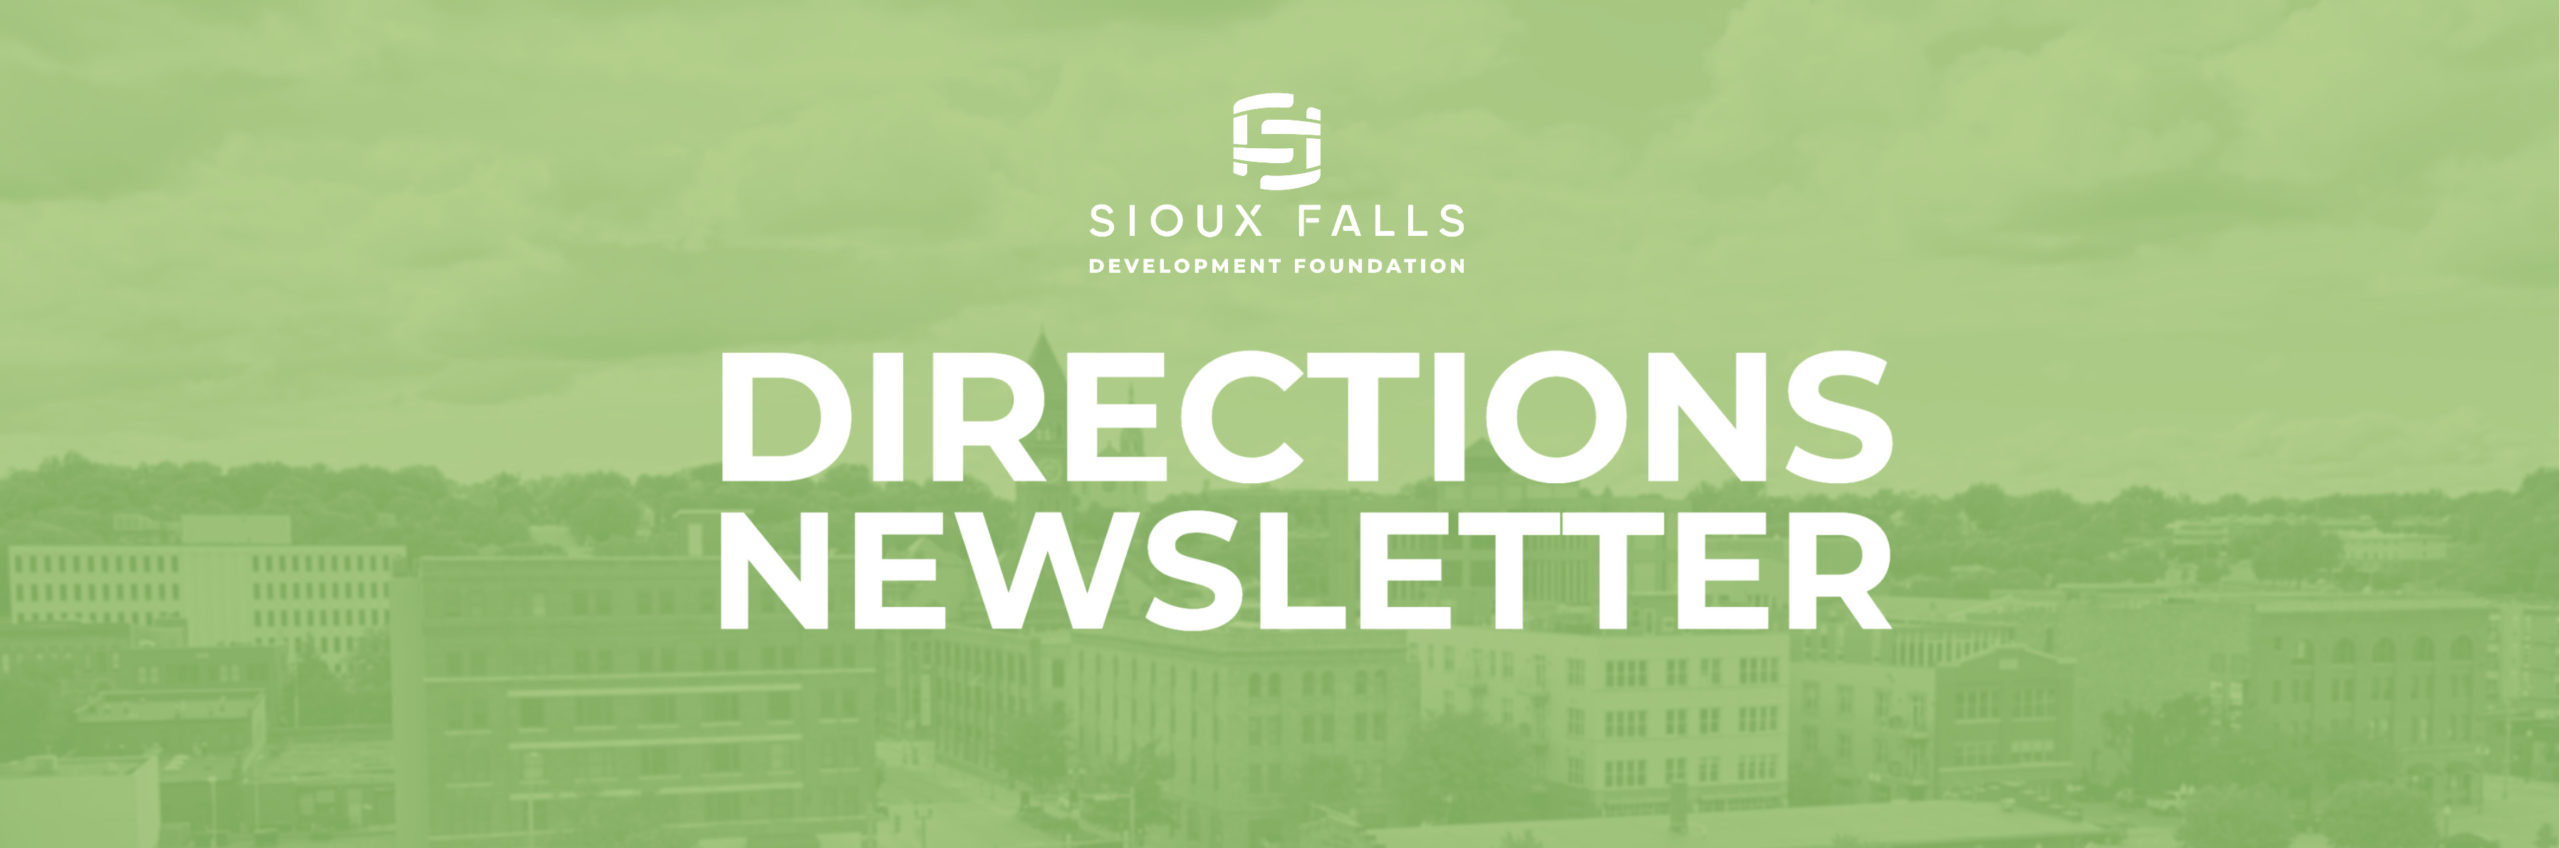 Directions Newsletter